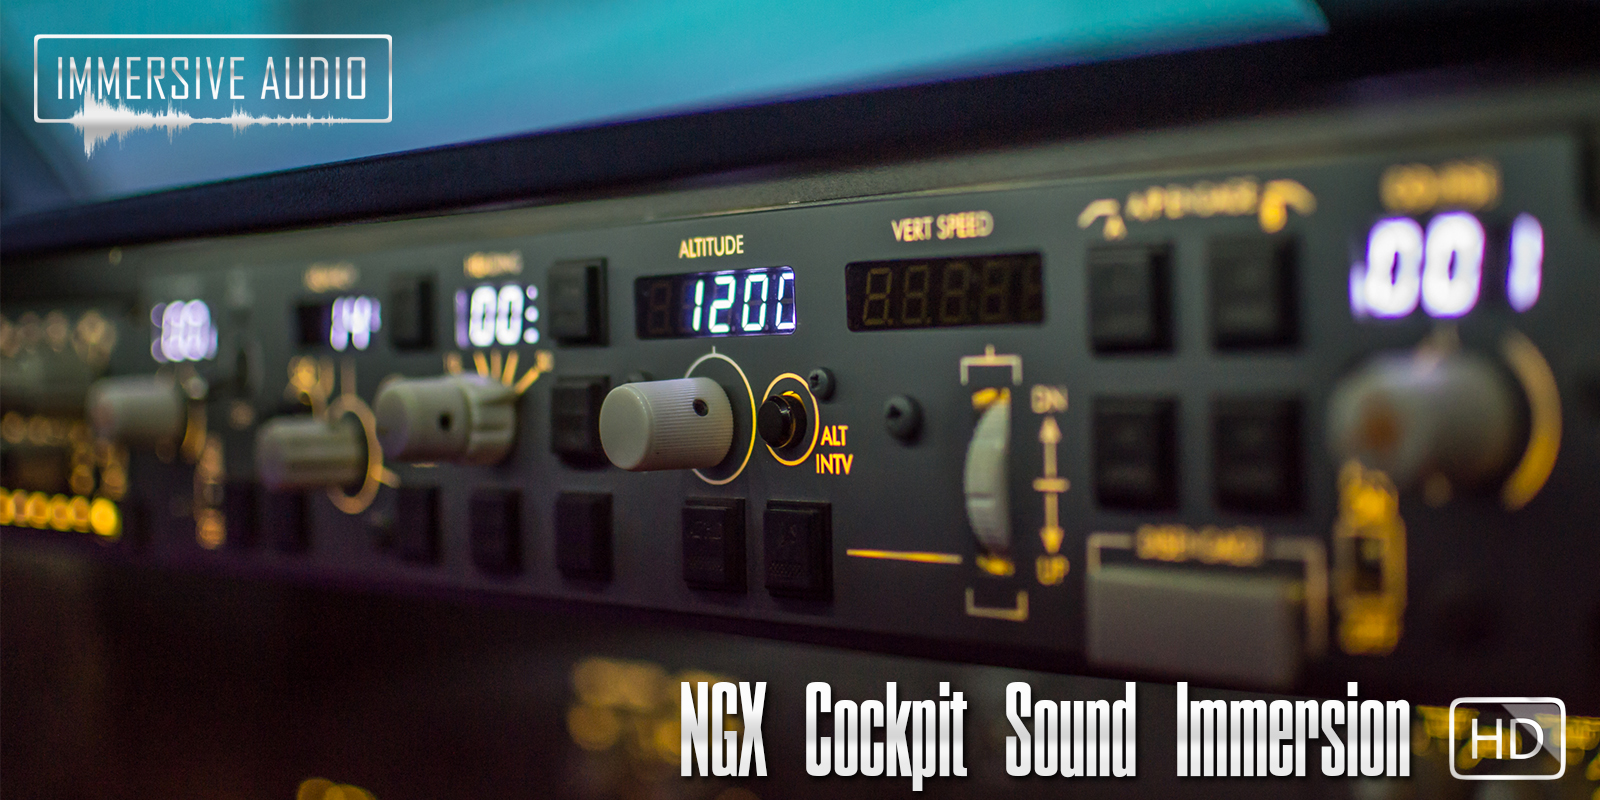 For Love Of Sim: IMMERSIVE AUDIO - NGX COCKPIT SOUND